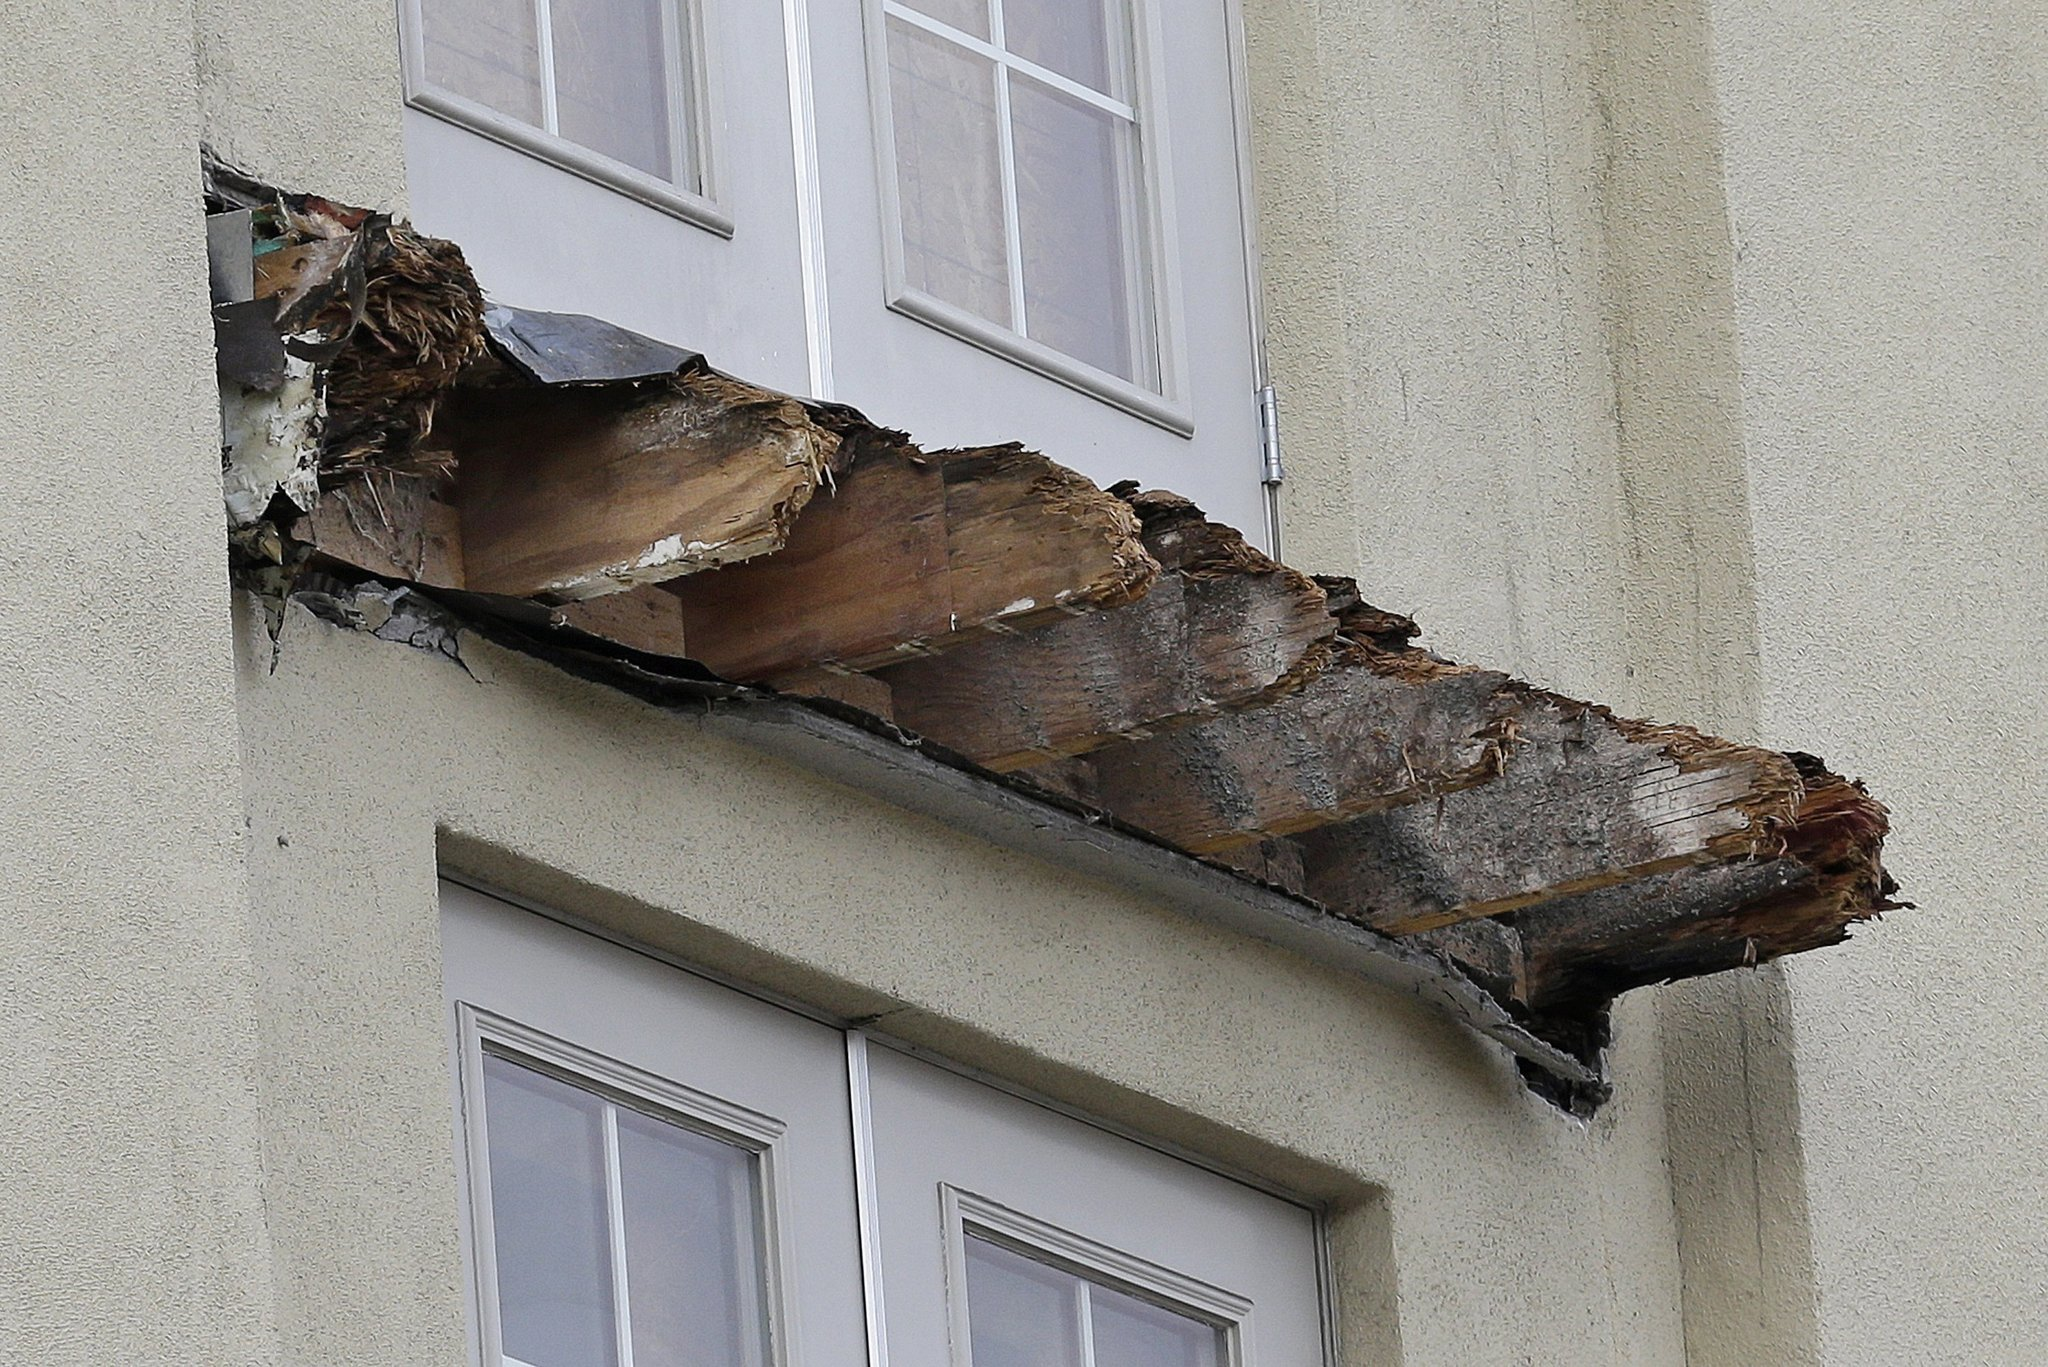 Apartment Building Berkeley collapsed balcony that killed 6 passed 2014 inspection, records